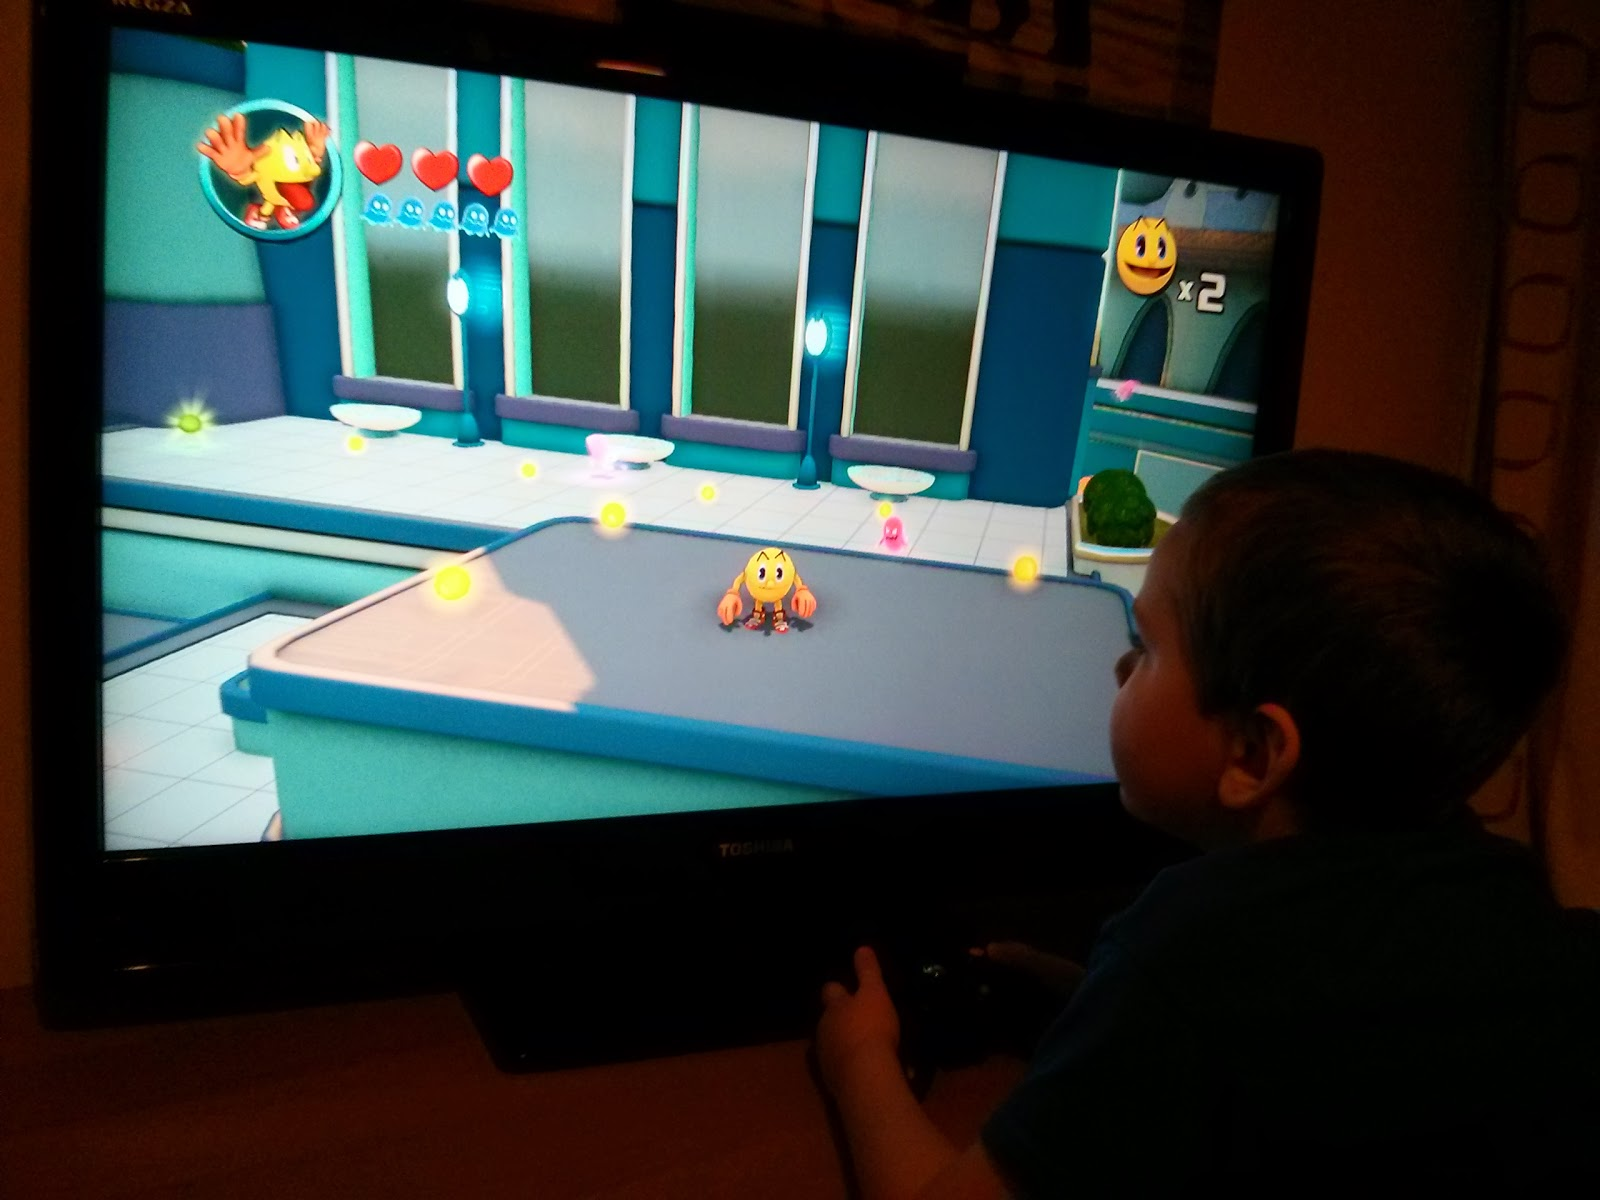 Big Boy playing PAC-MAN and the Ghostly Adventures